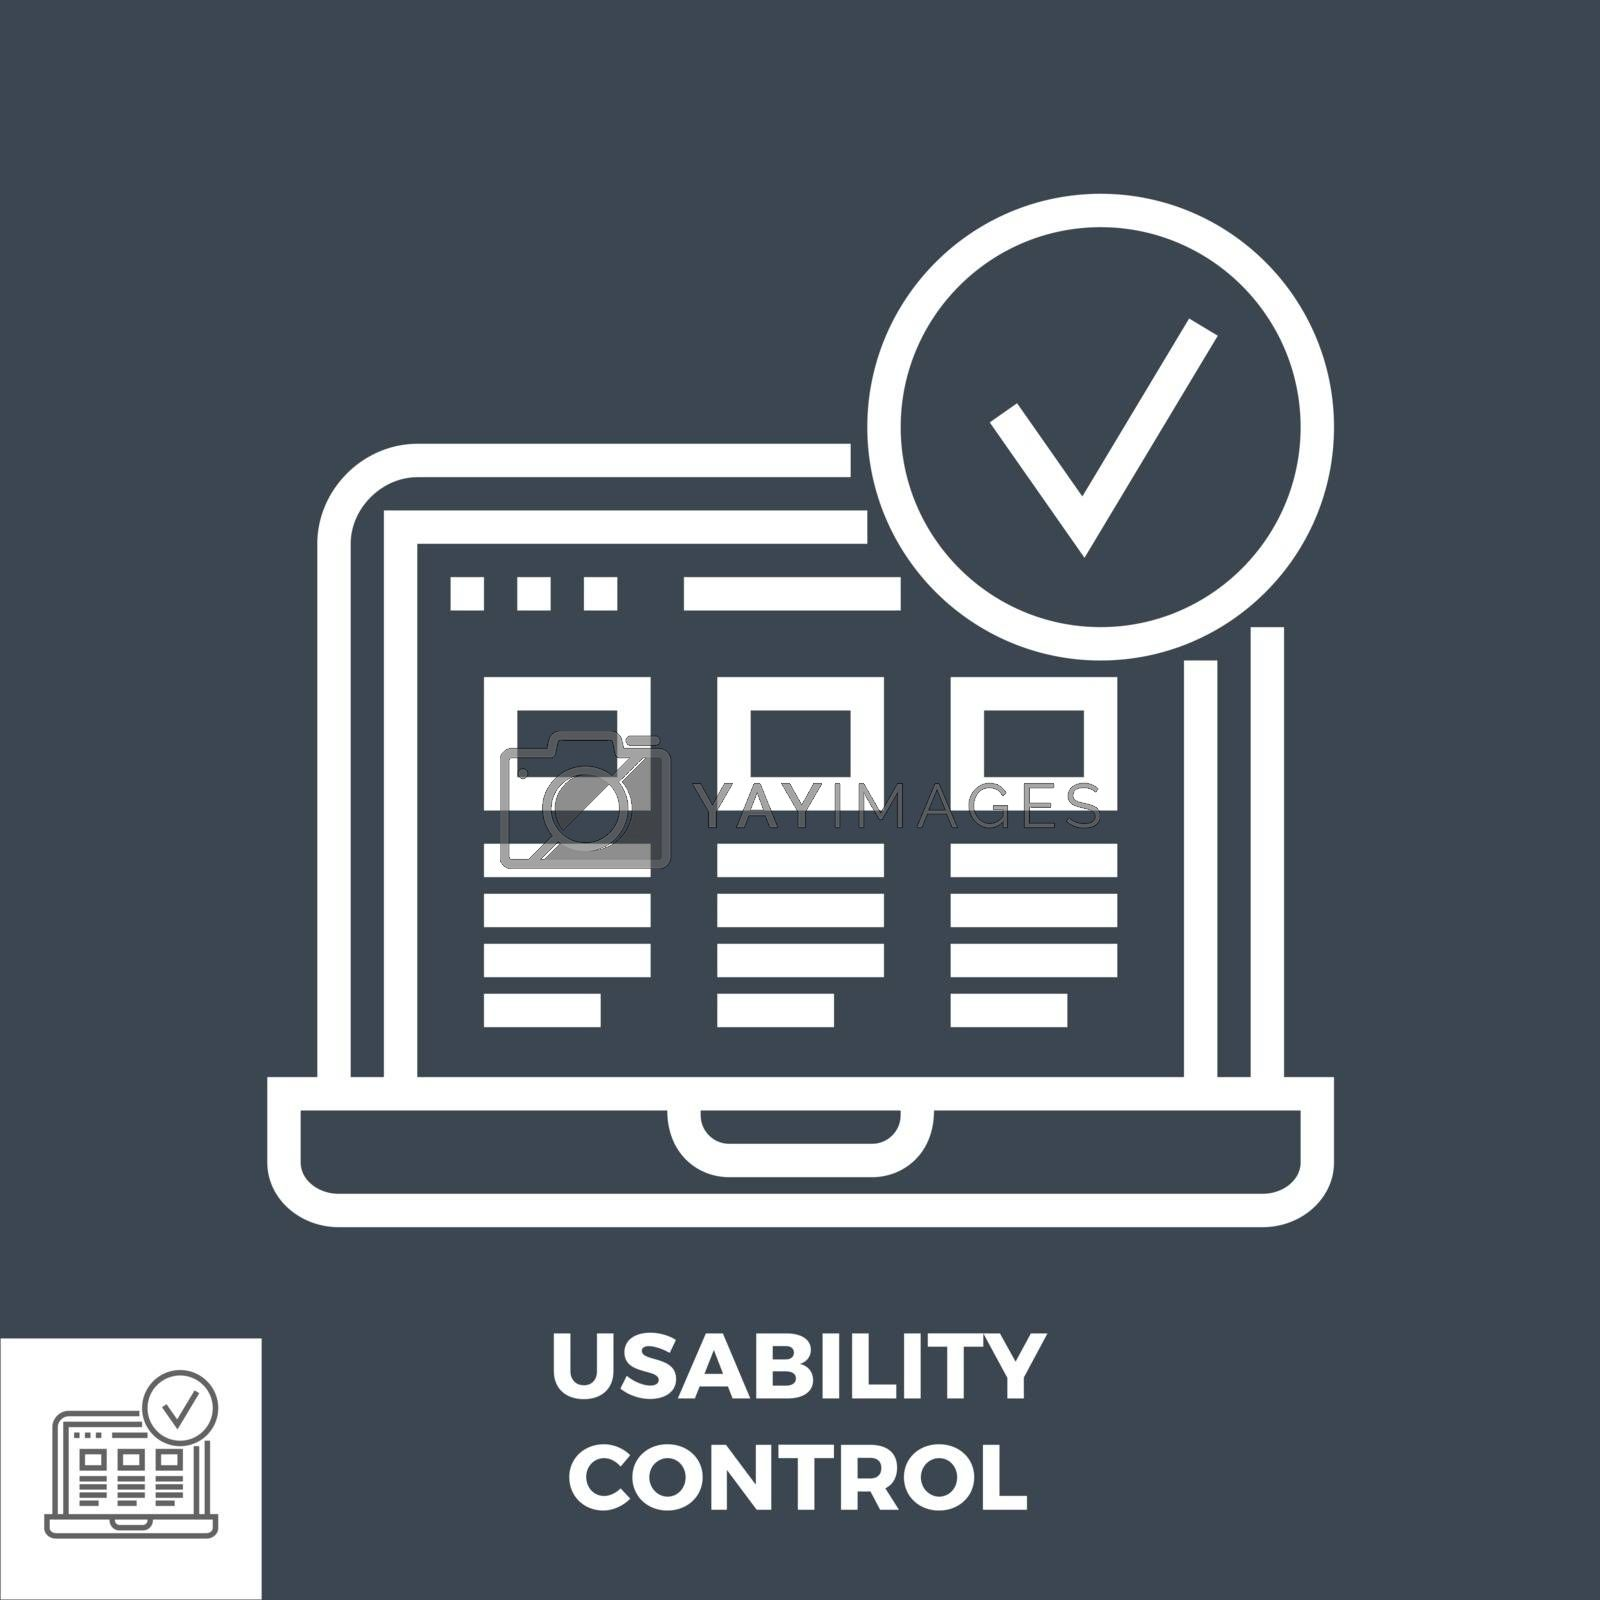 Usability Control Thin Line Vector Icon Isolated on the Black Background.